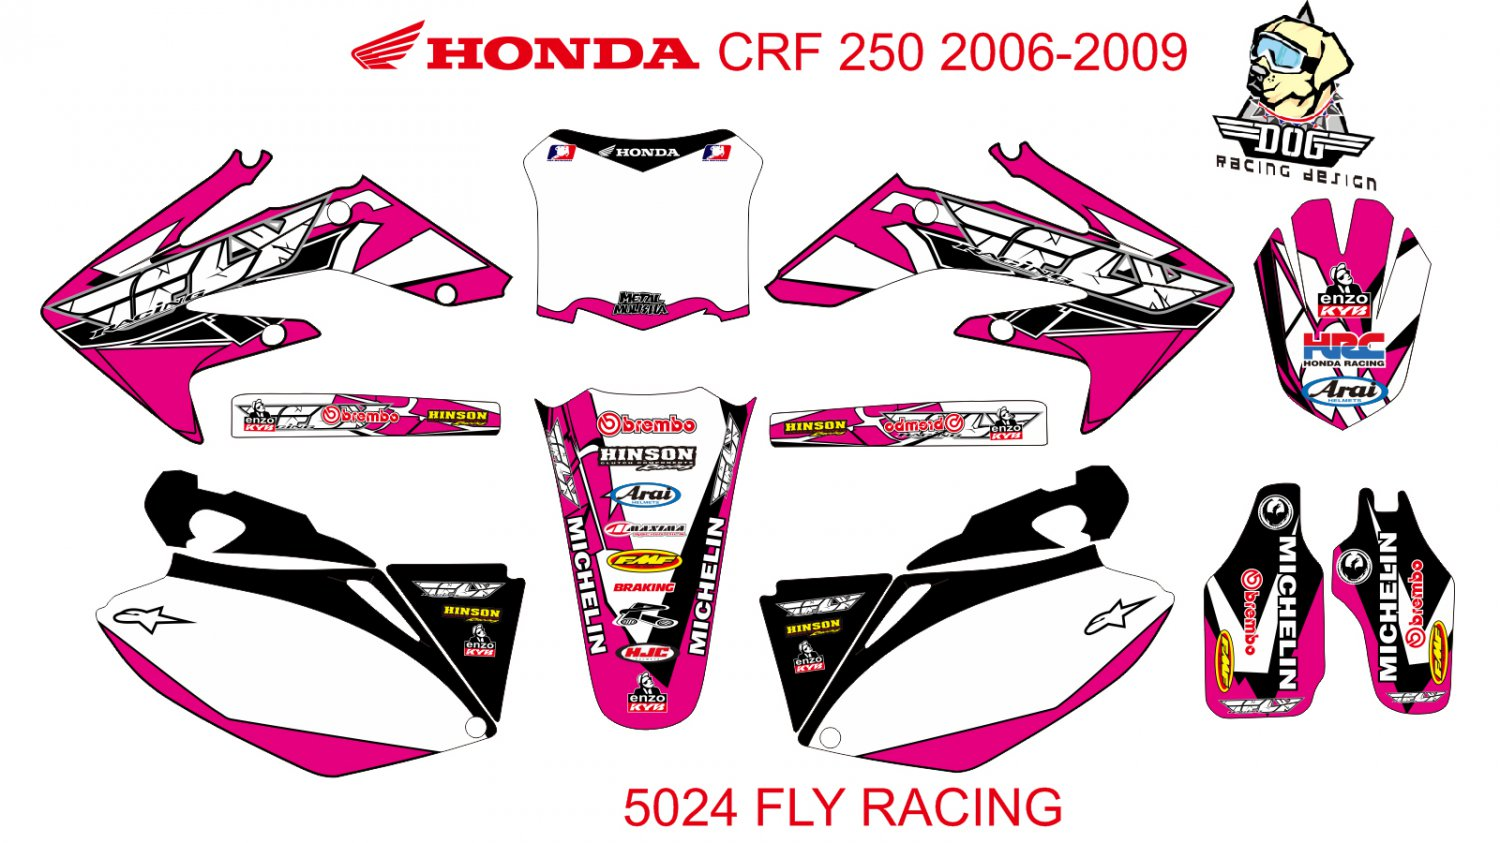 HONDA CRF 250 2006-2009 GRAPHIC DECAL KIT CODE.5024